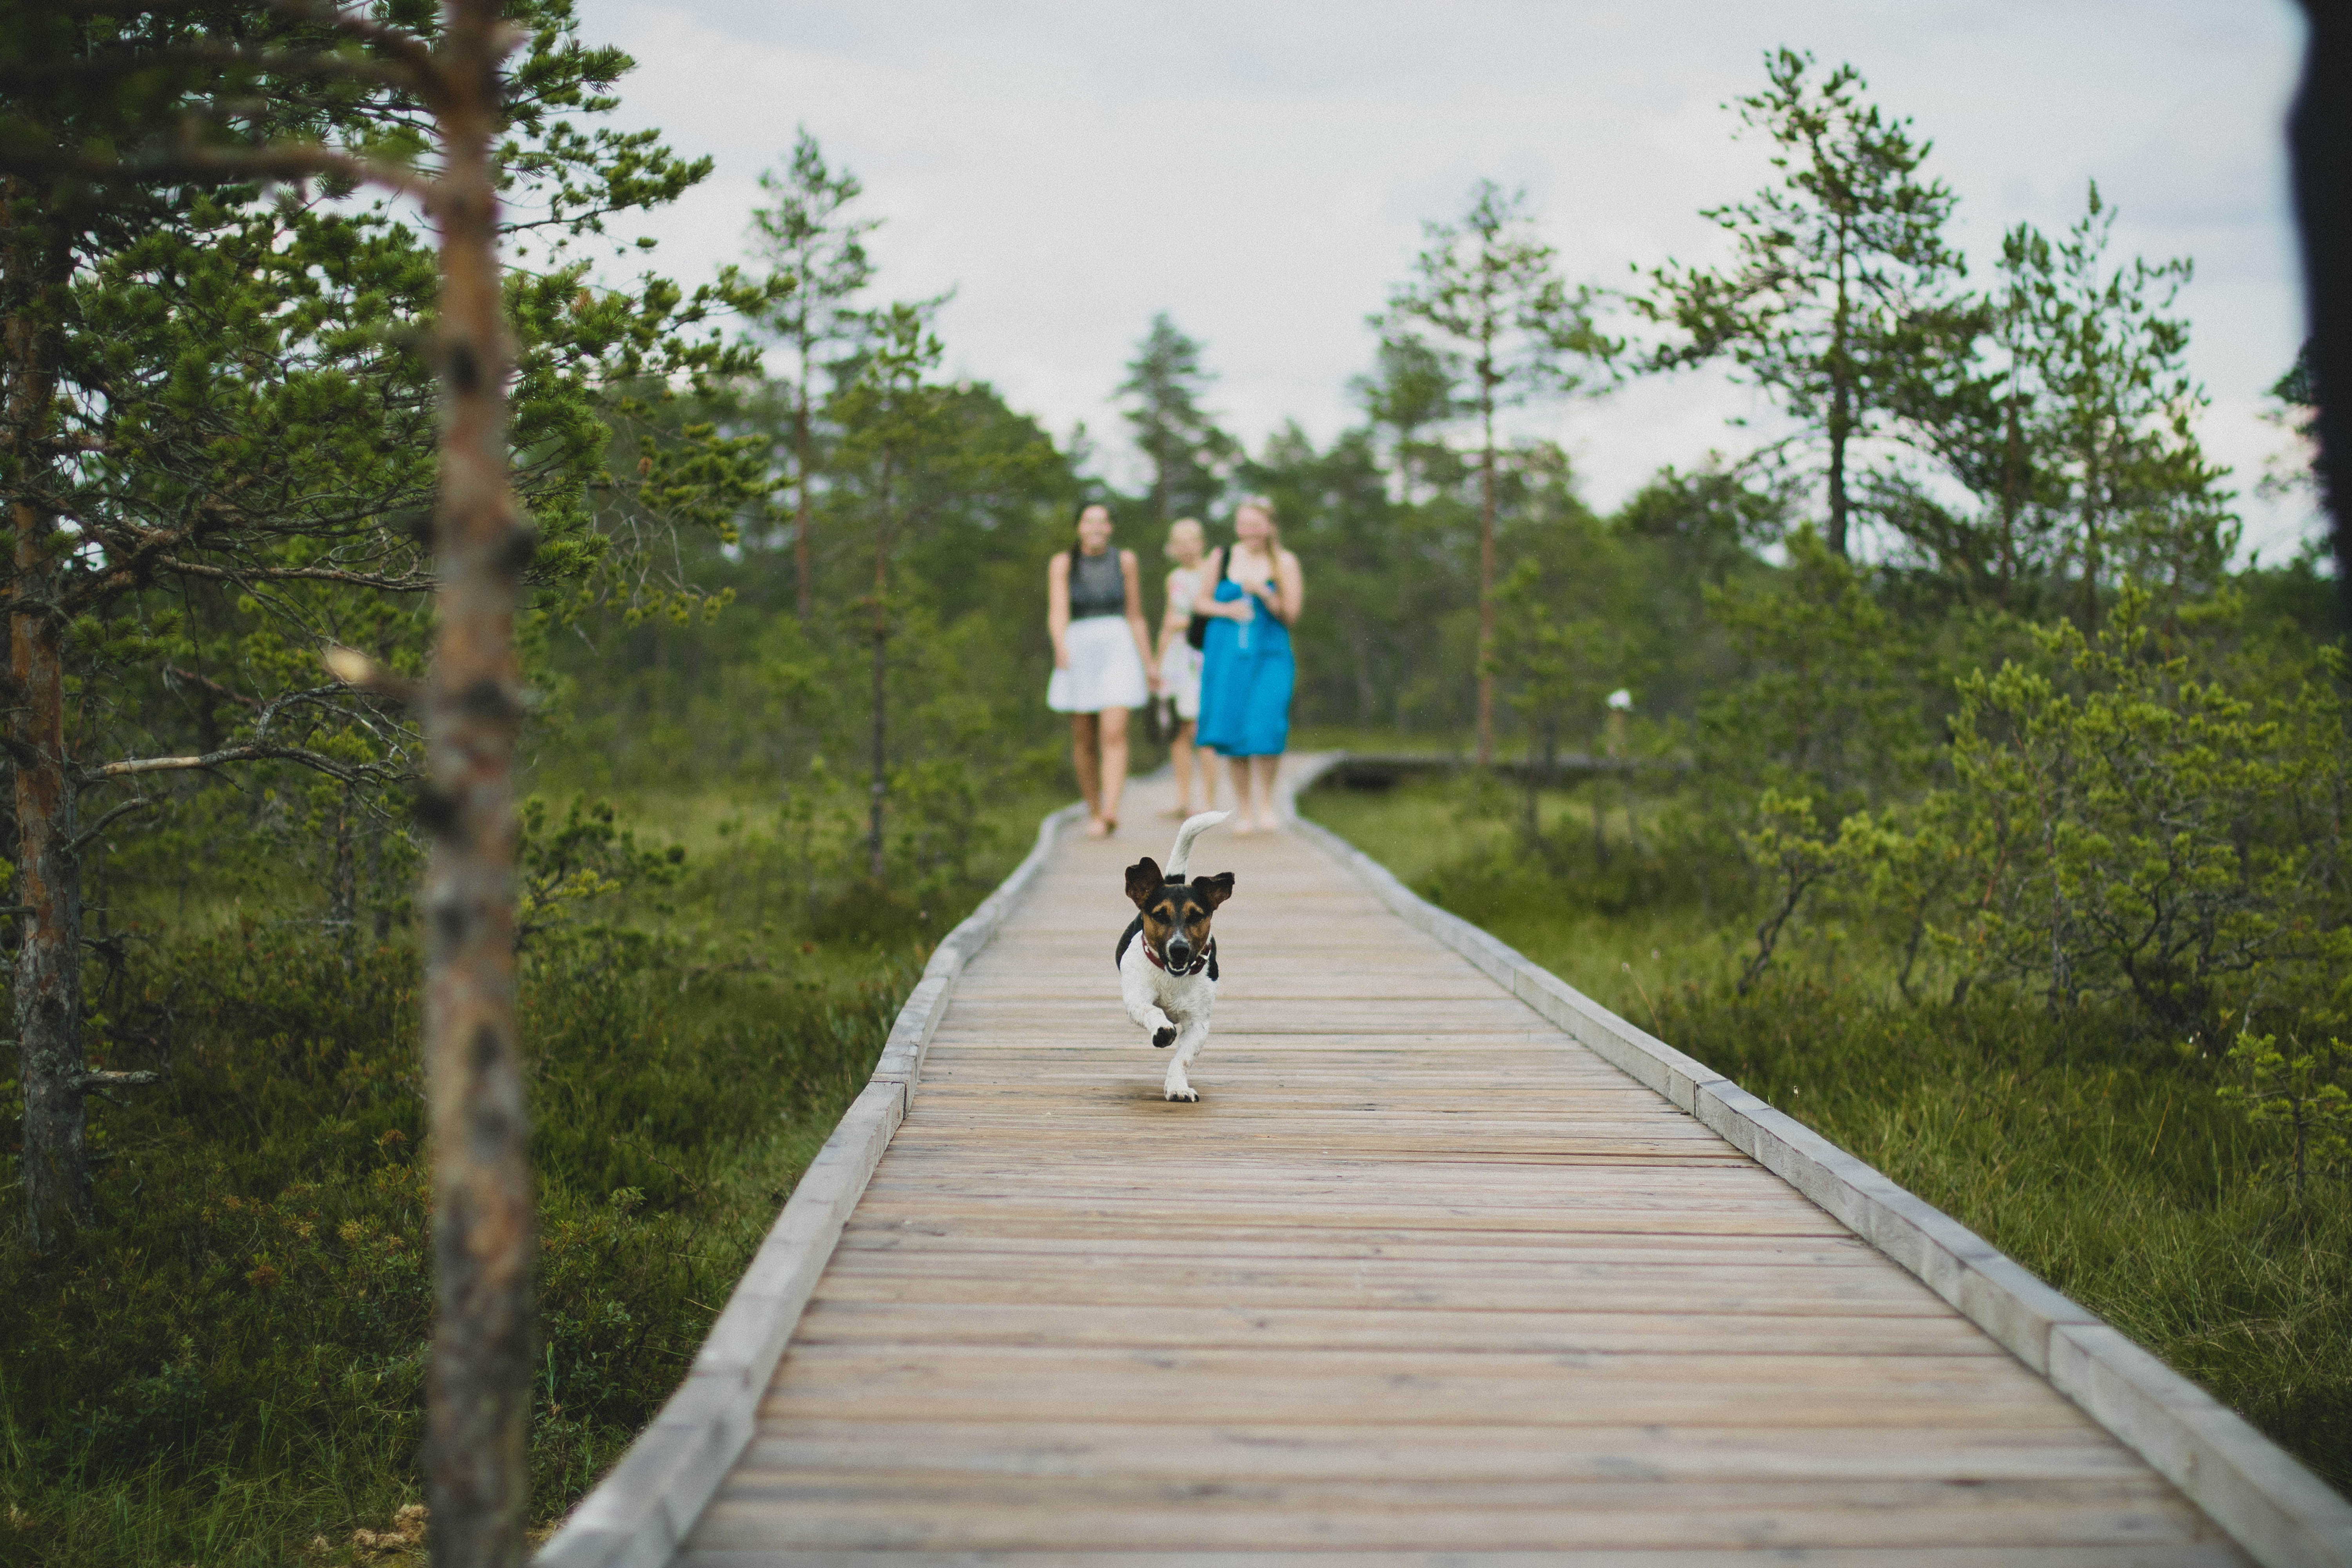 Dog running on bridge with people